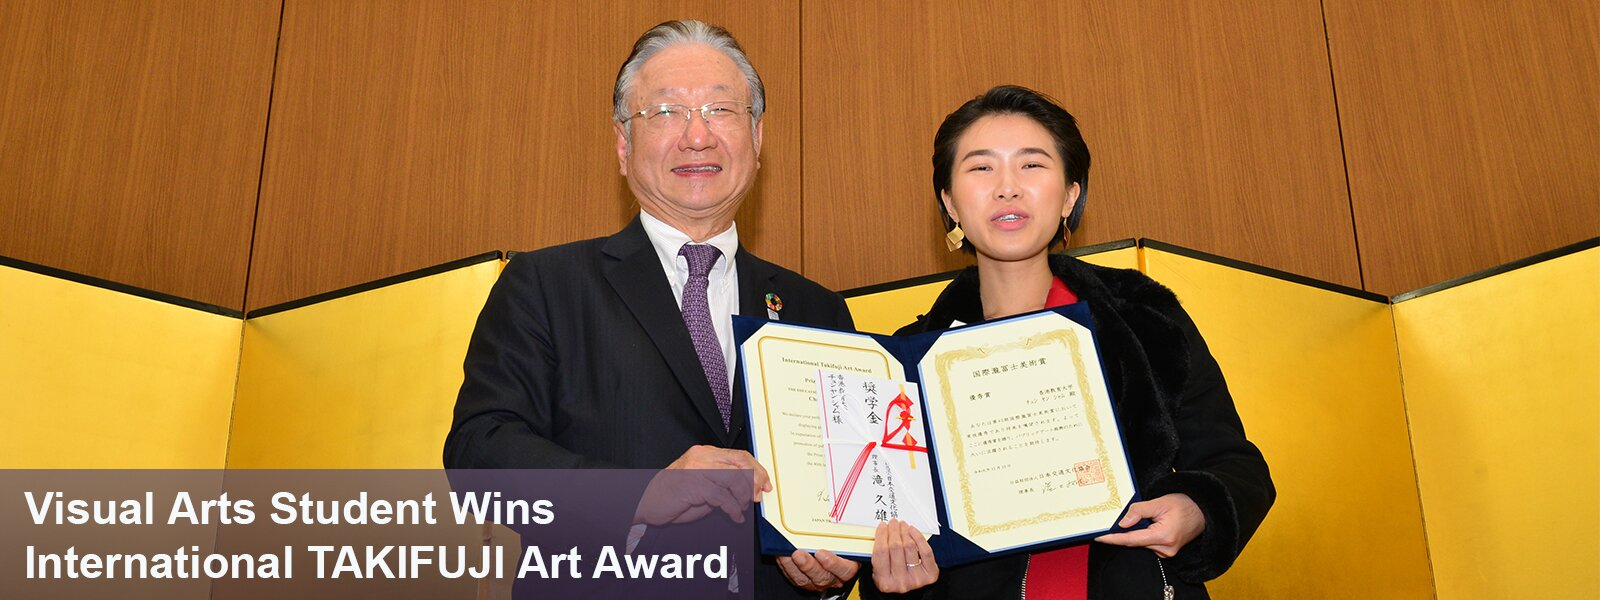 Visual Arts Student Wins International TAKIFUJI Art Award